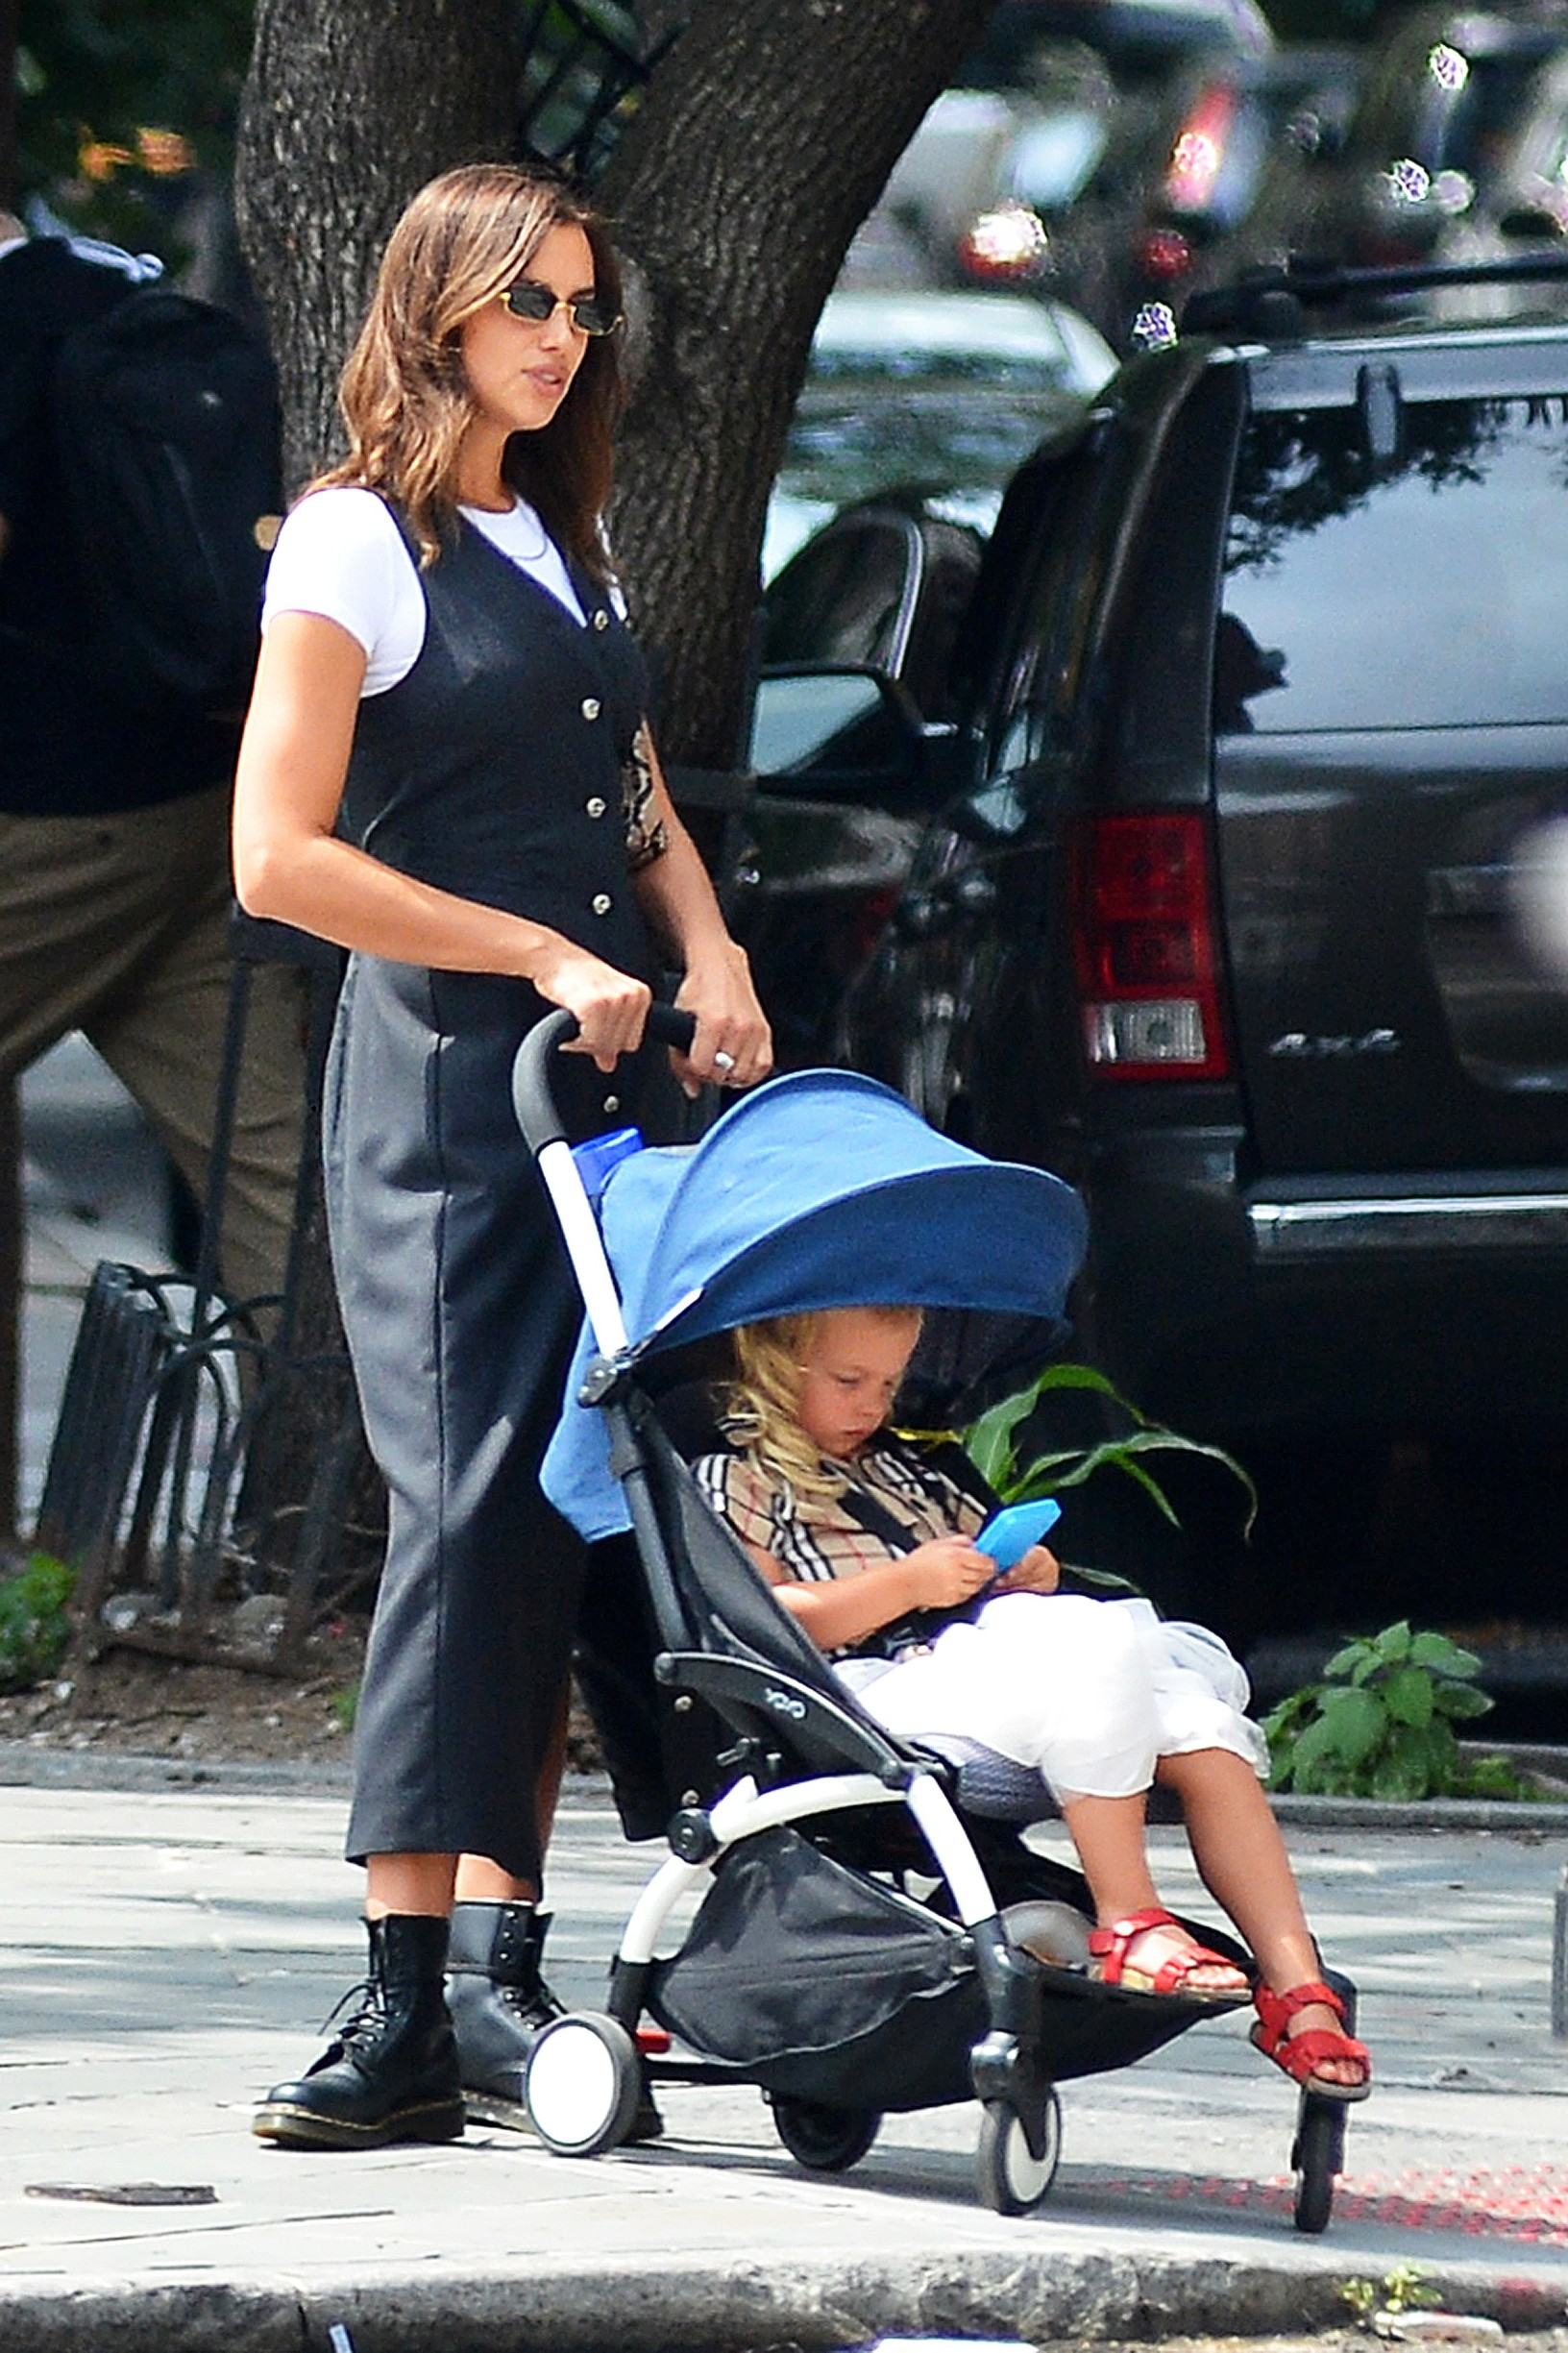 08/21/2020 EXCLUSIVE: Irina Shayk Steps Out With Her Daughter in New York City. The 34 year old model looked casual in a long black dress over a white tee shirt and black Doc Marten boots,Image: 554486305, License: Rights-managed, Restrictions: Exclusive NO usage without agreed price and terms. Please contact sales@theimagedirect.com, Model Release: no, Credit line: TheImageDirect.com / The Image Direct / Profimedia